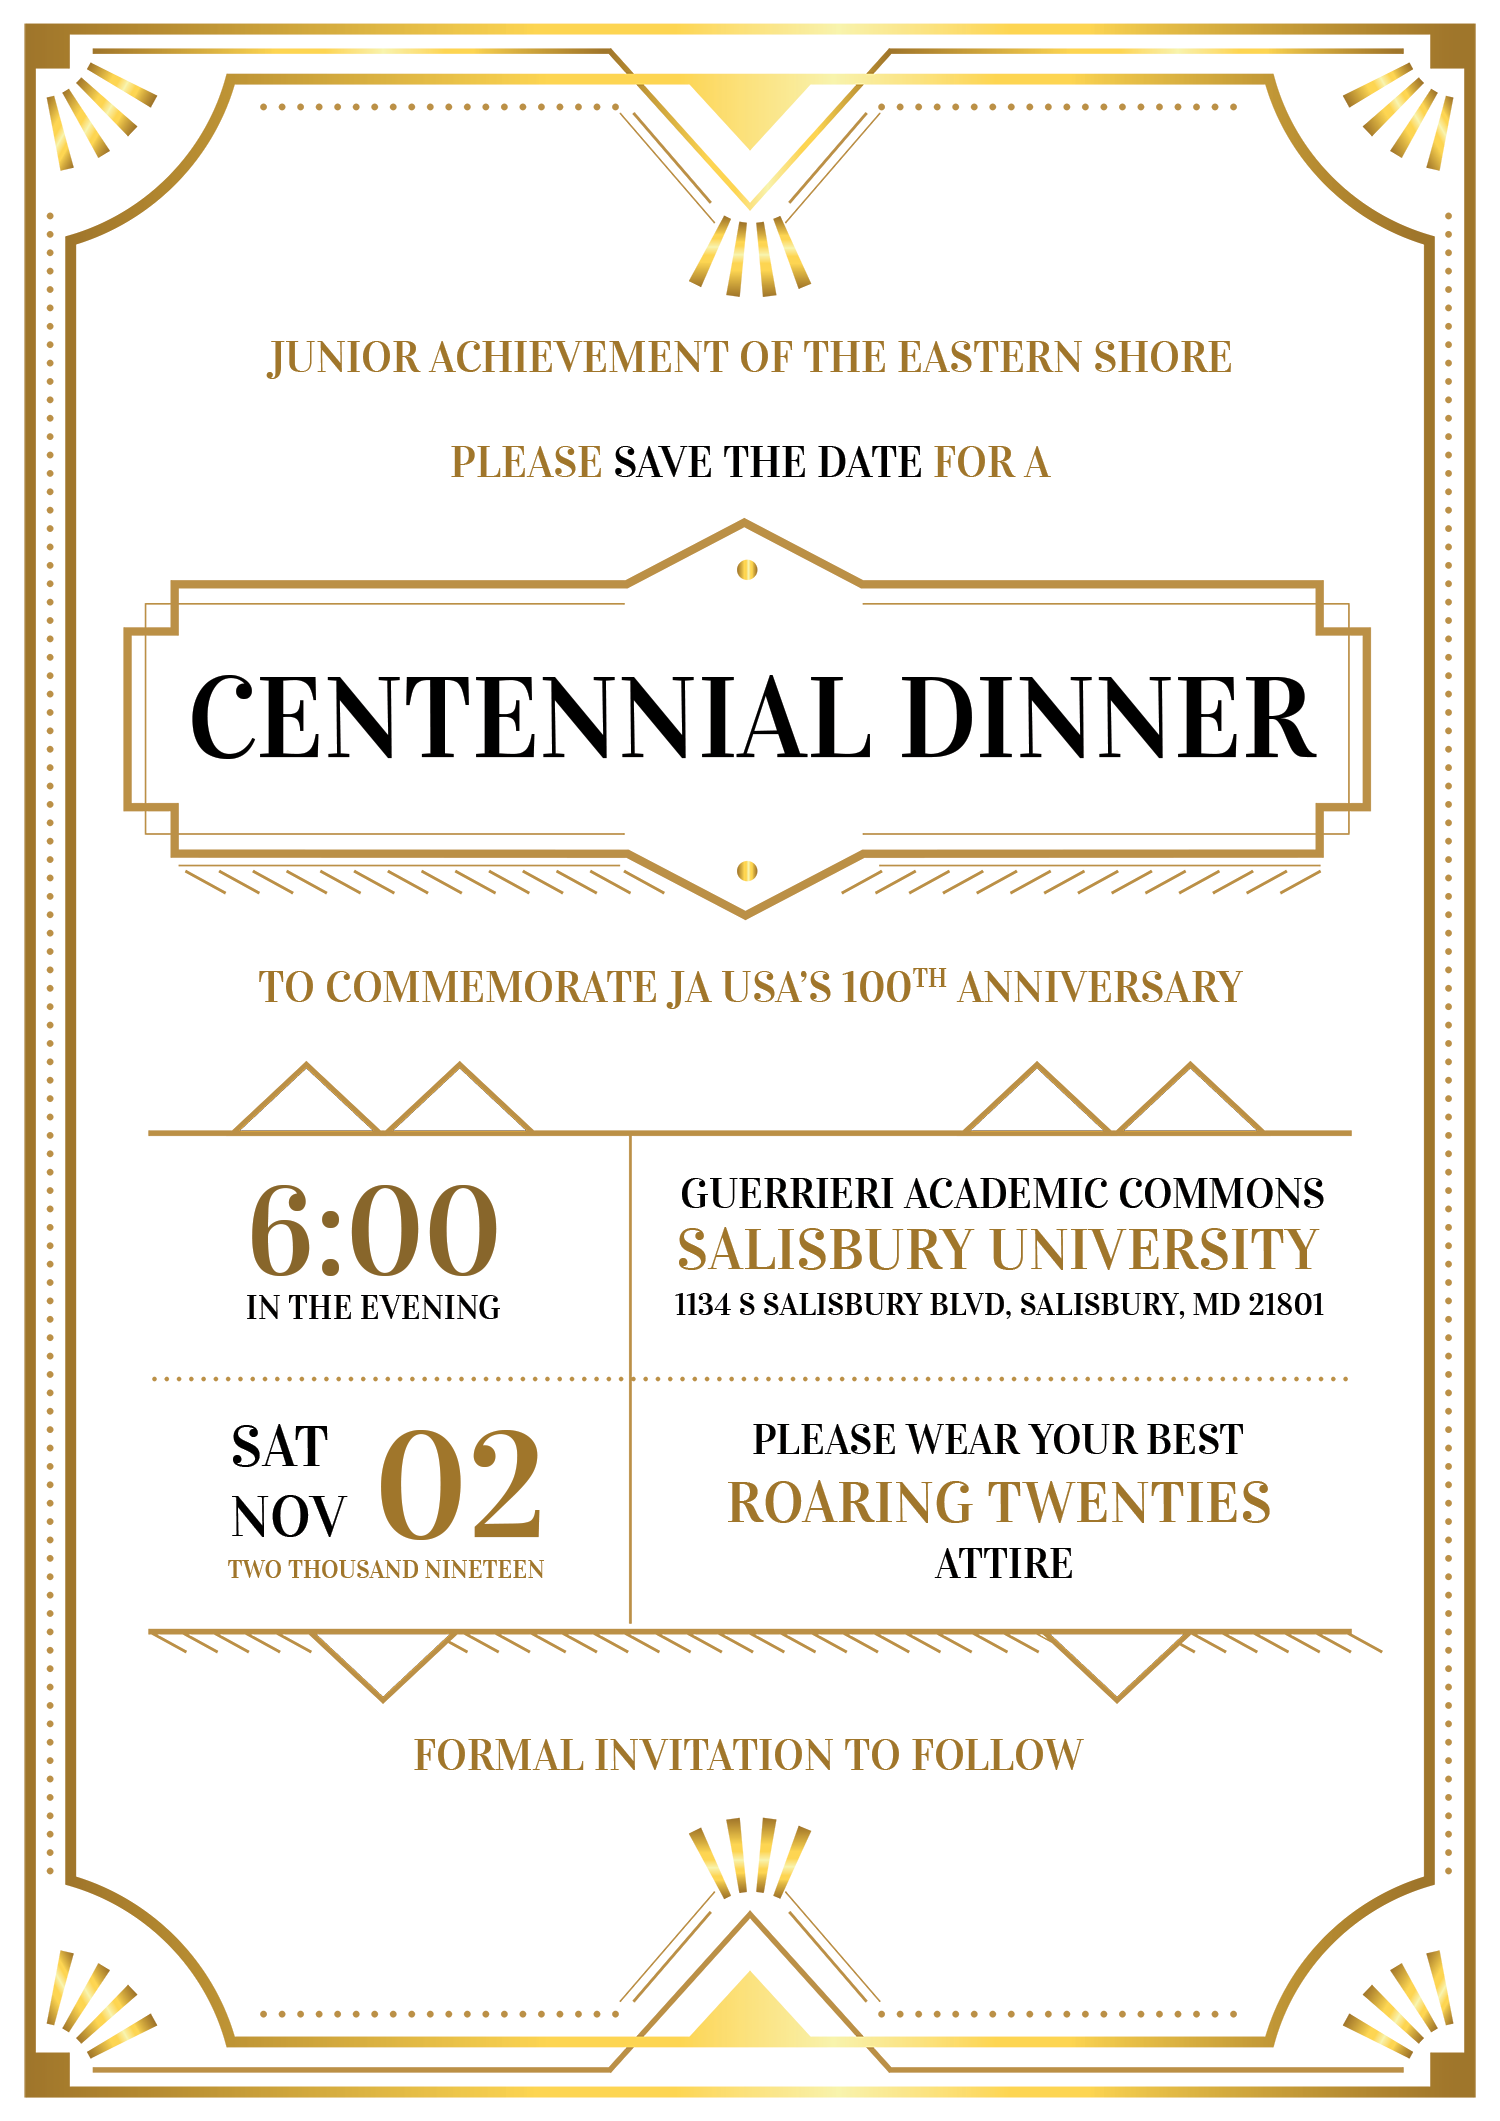 JA Centennial Dinner Save The Date